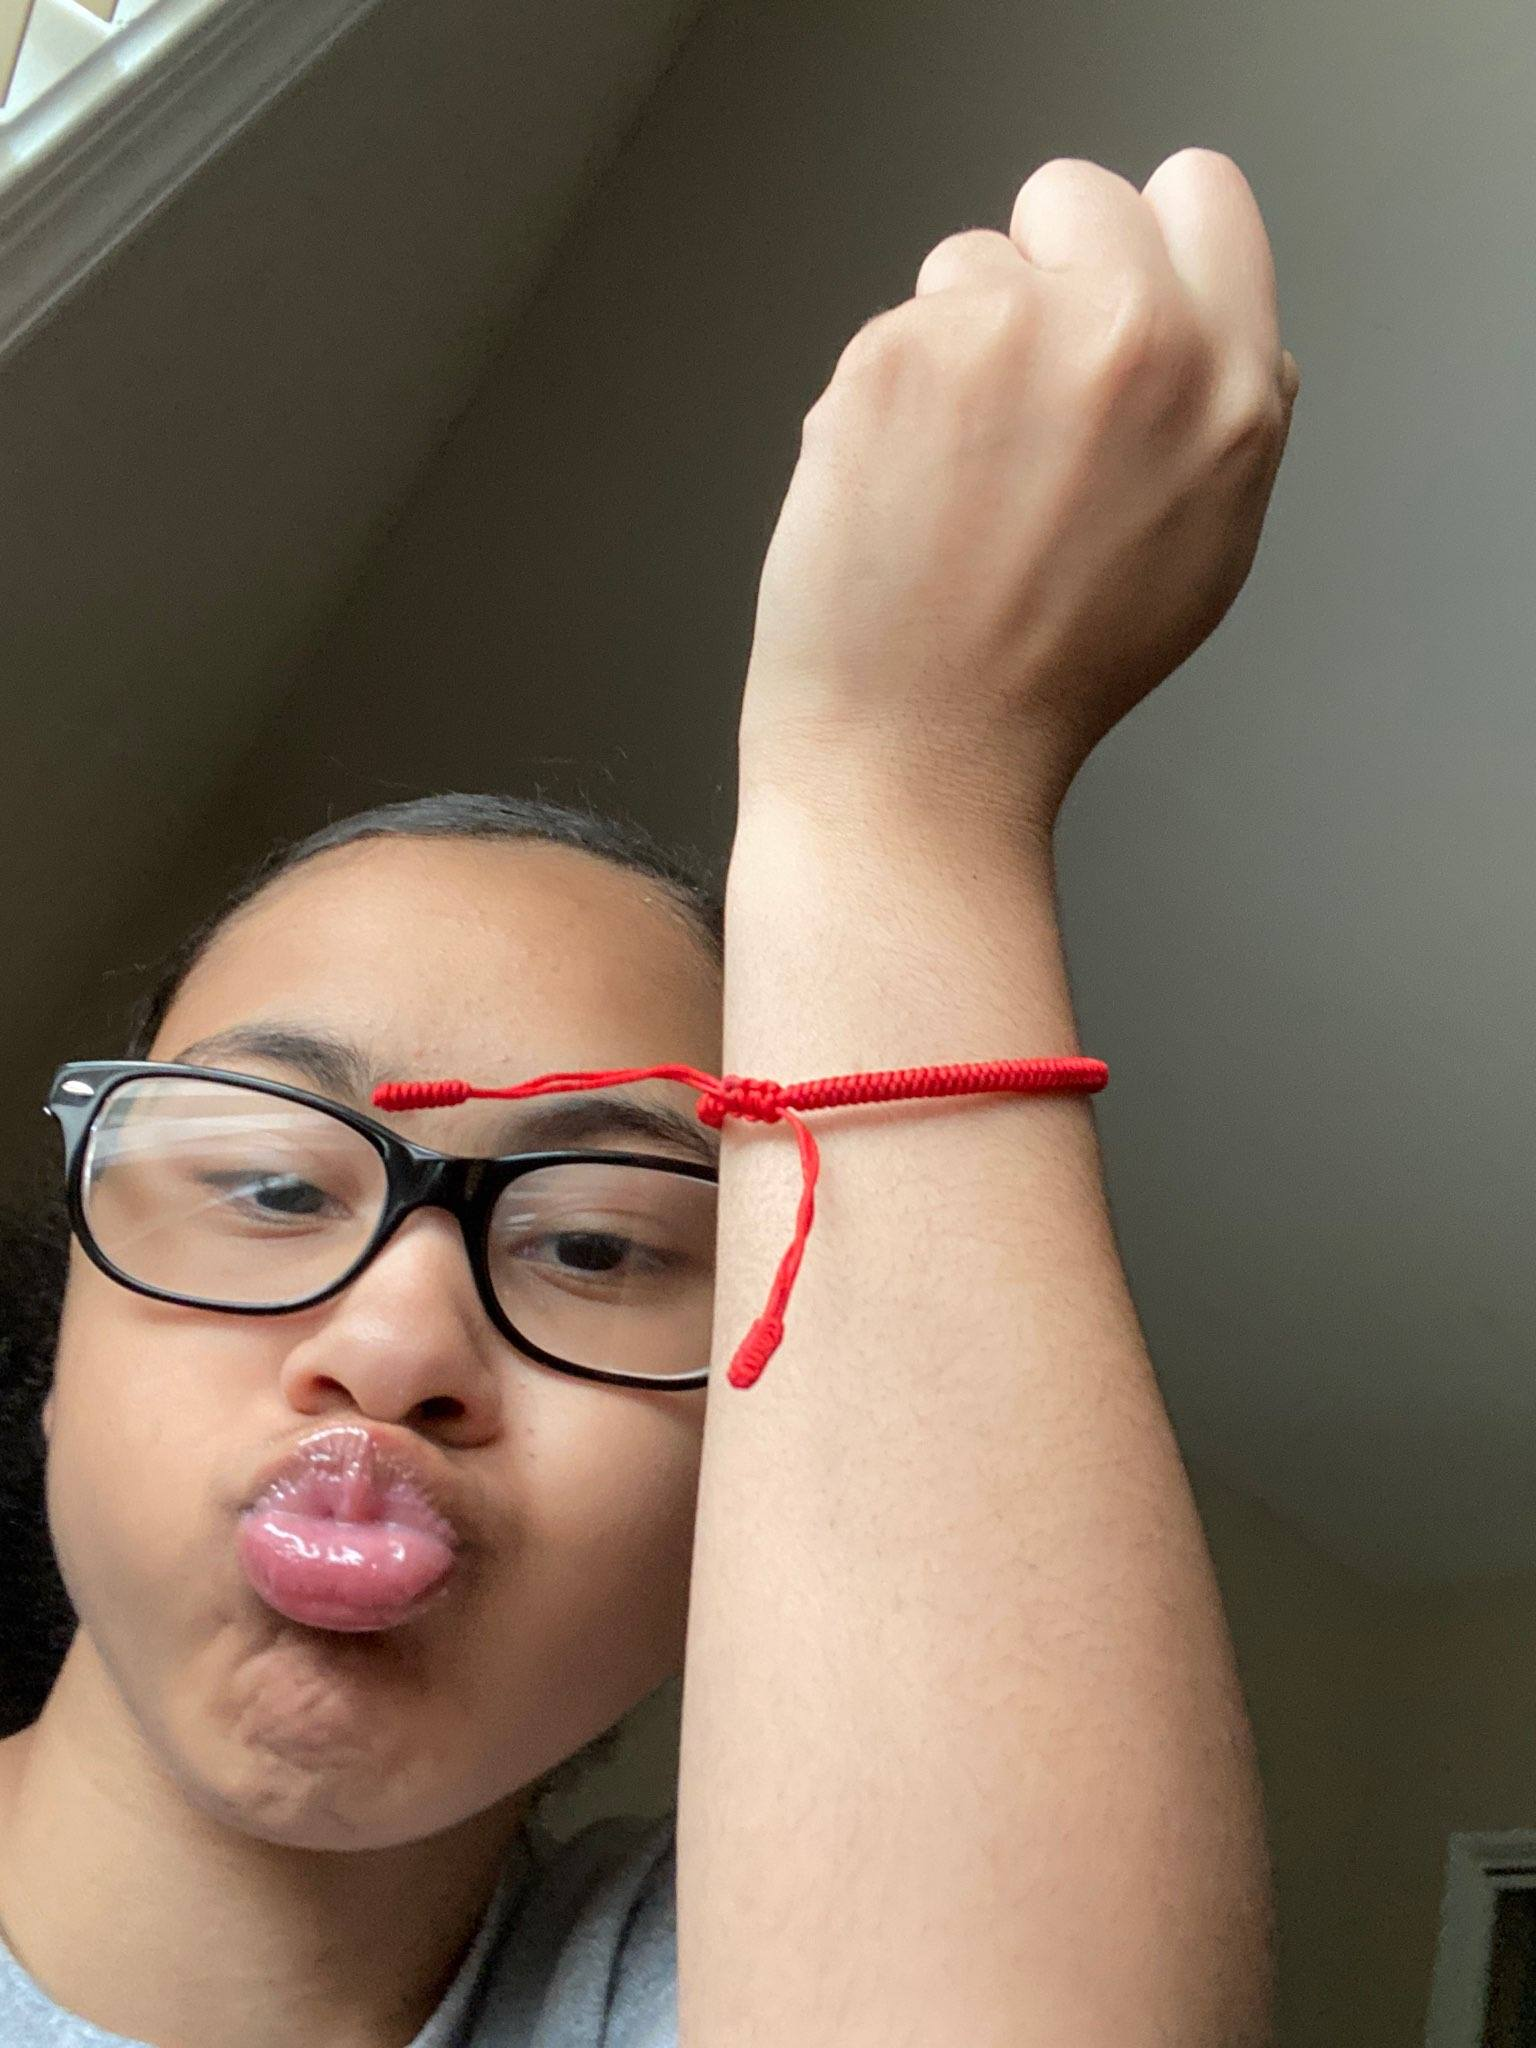 Wearing the Red String Solidarity Bracelet